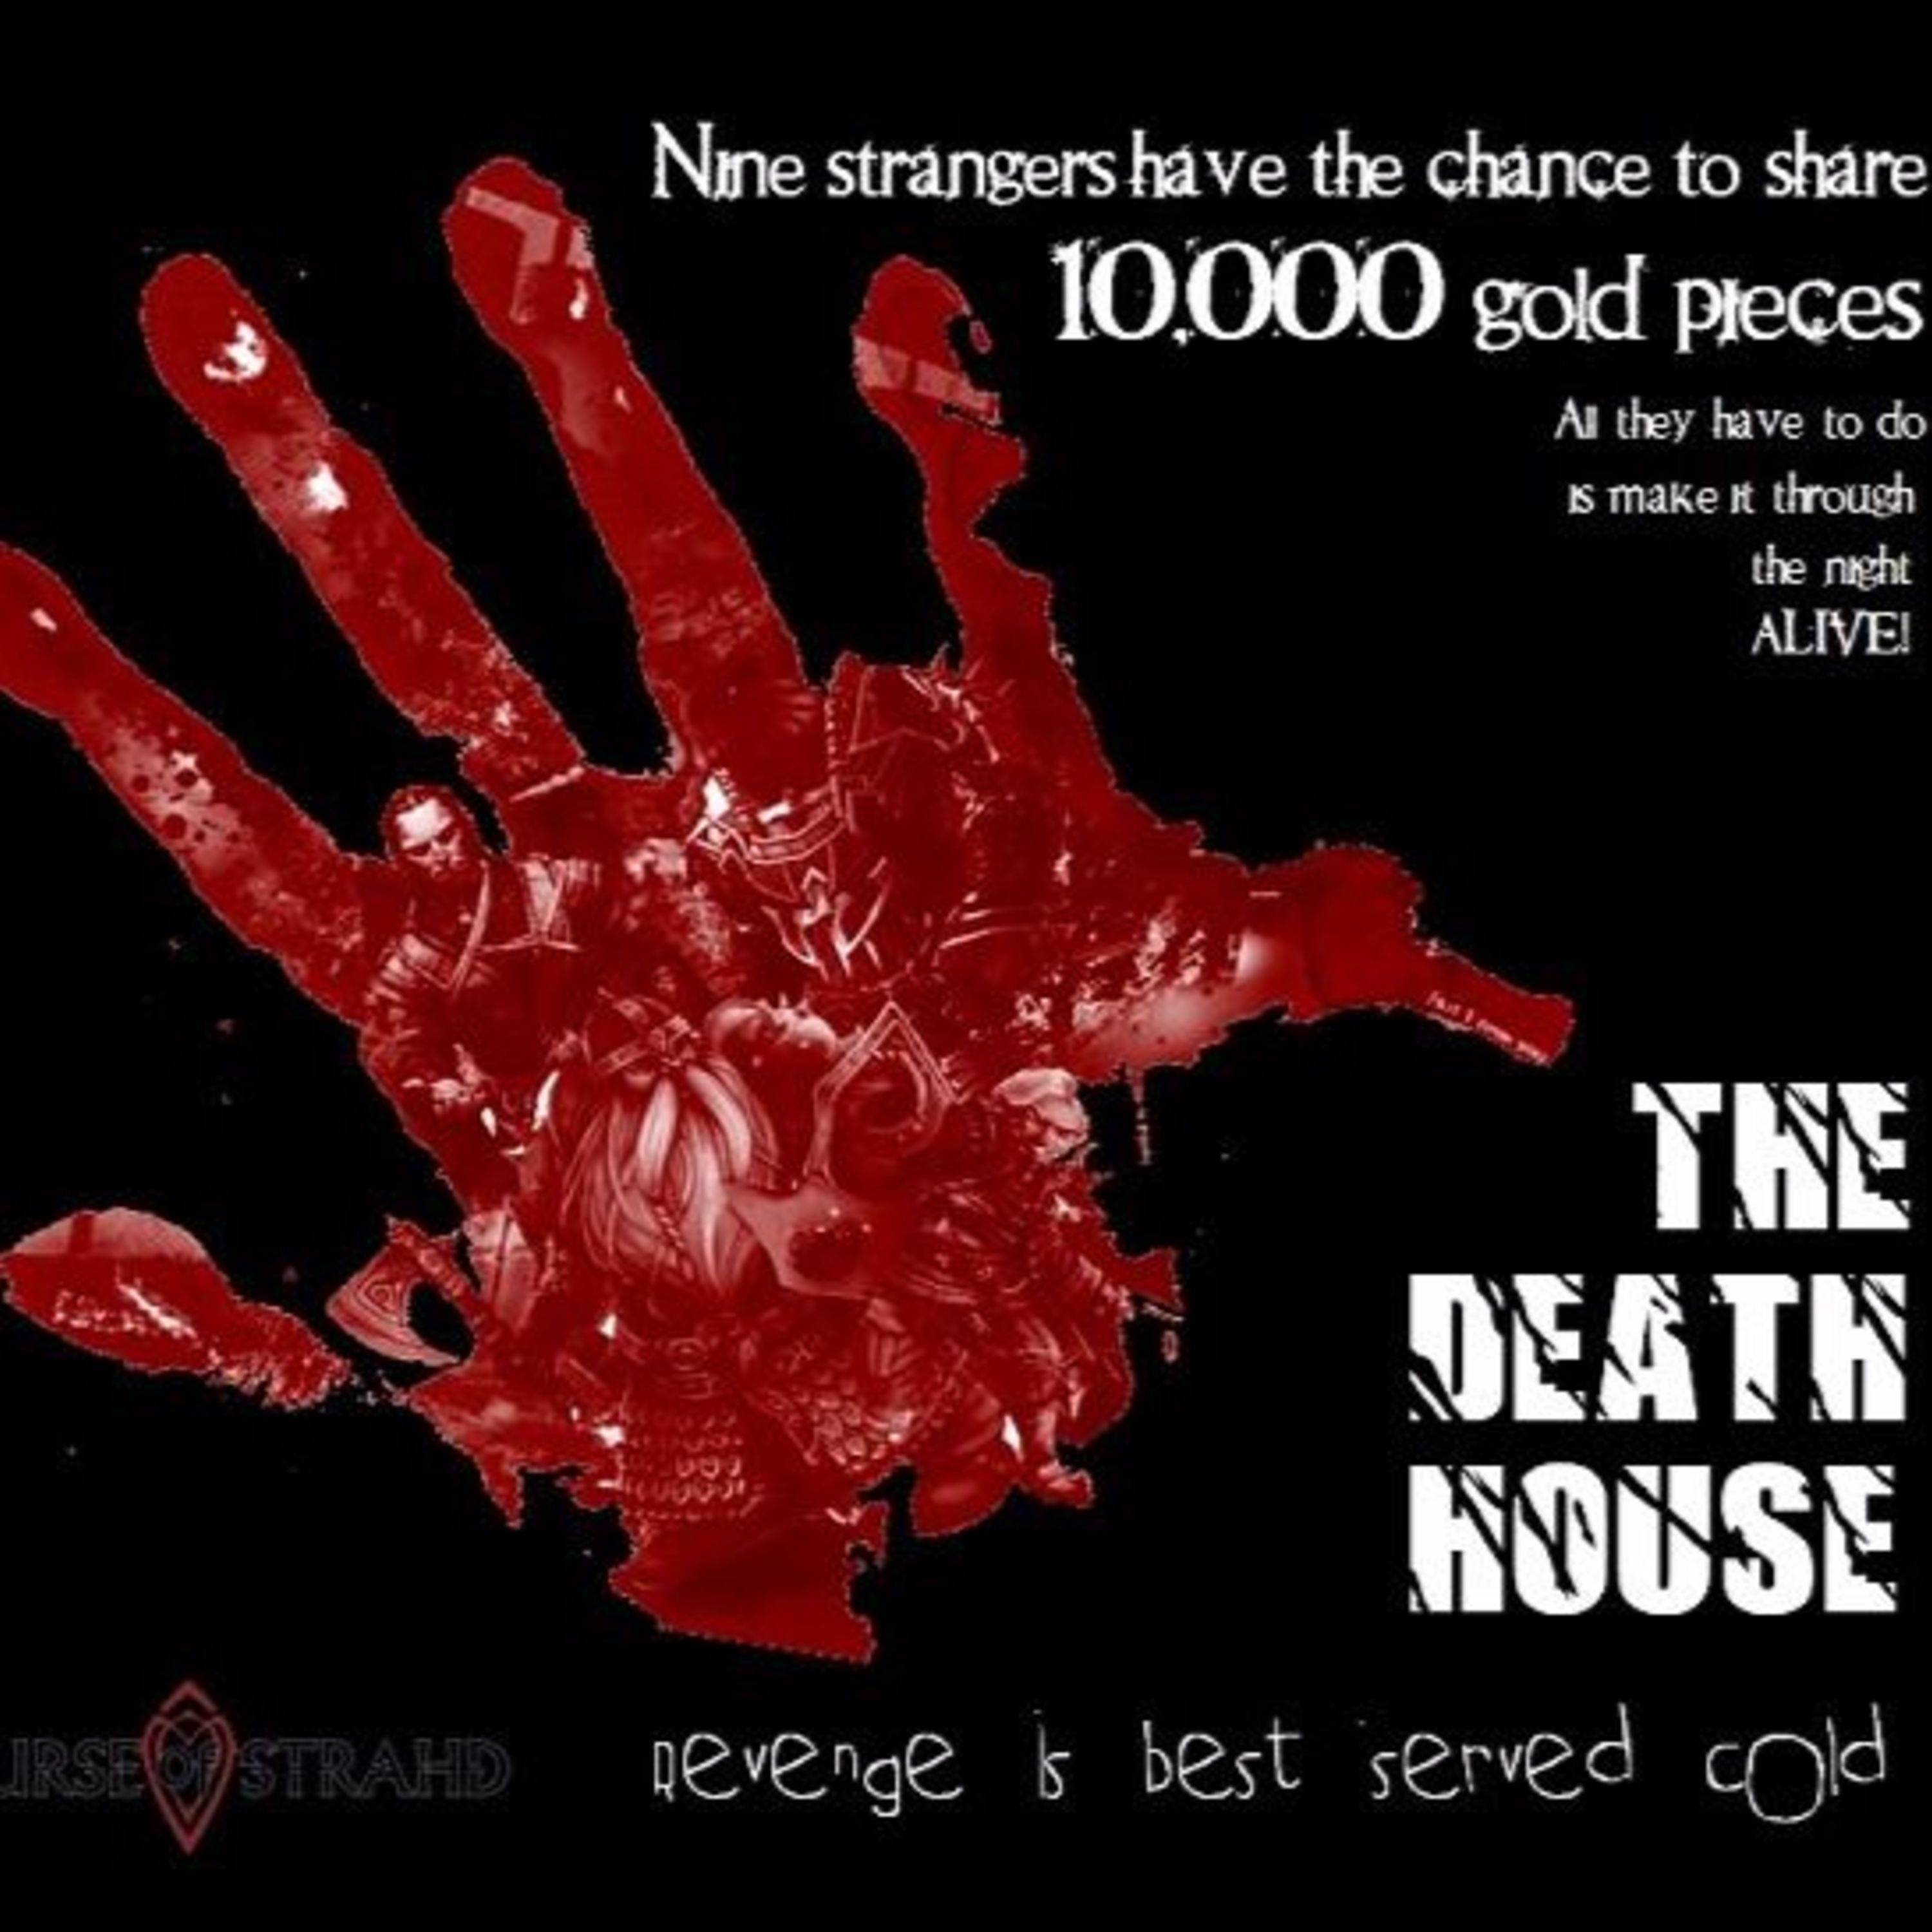 001 - Curse of Strahd - The Death House - A Gentleman and